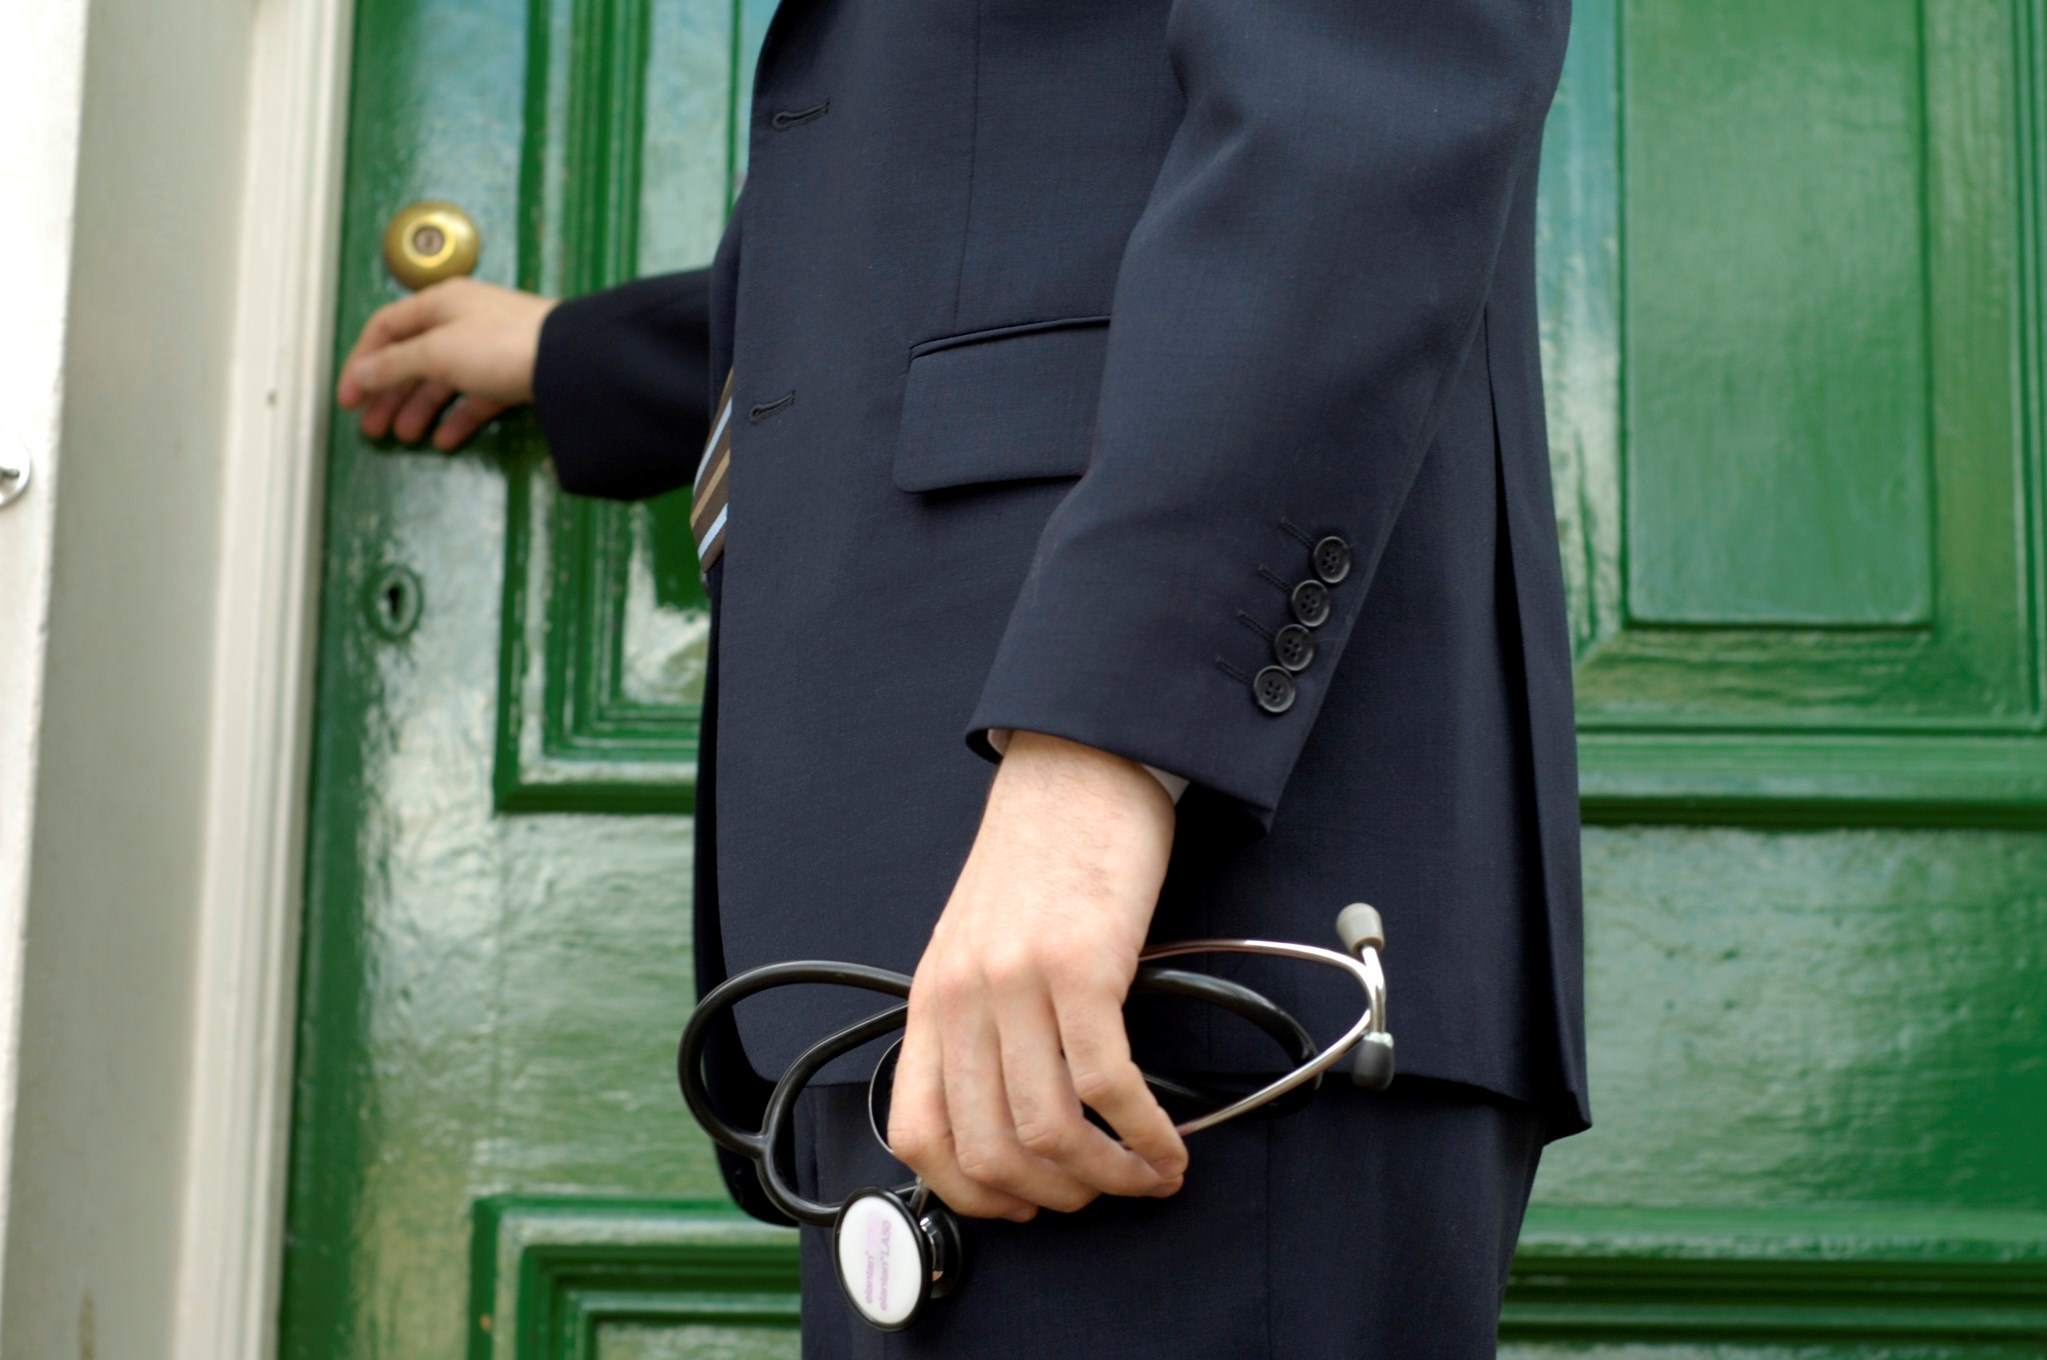 The truth about a doctor's day: know-it-all patients and no time for lunch